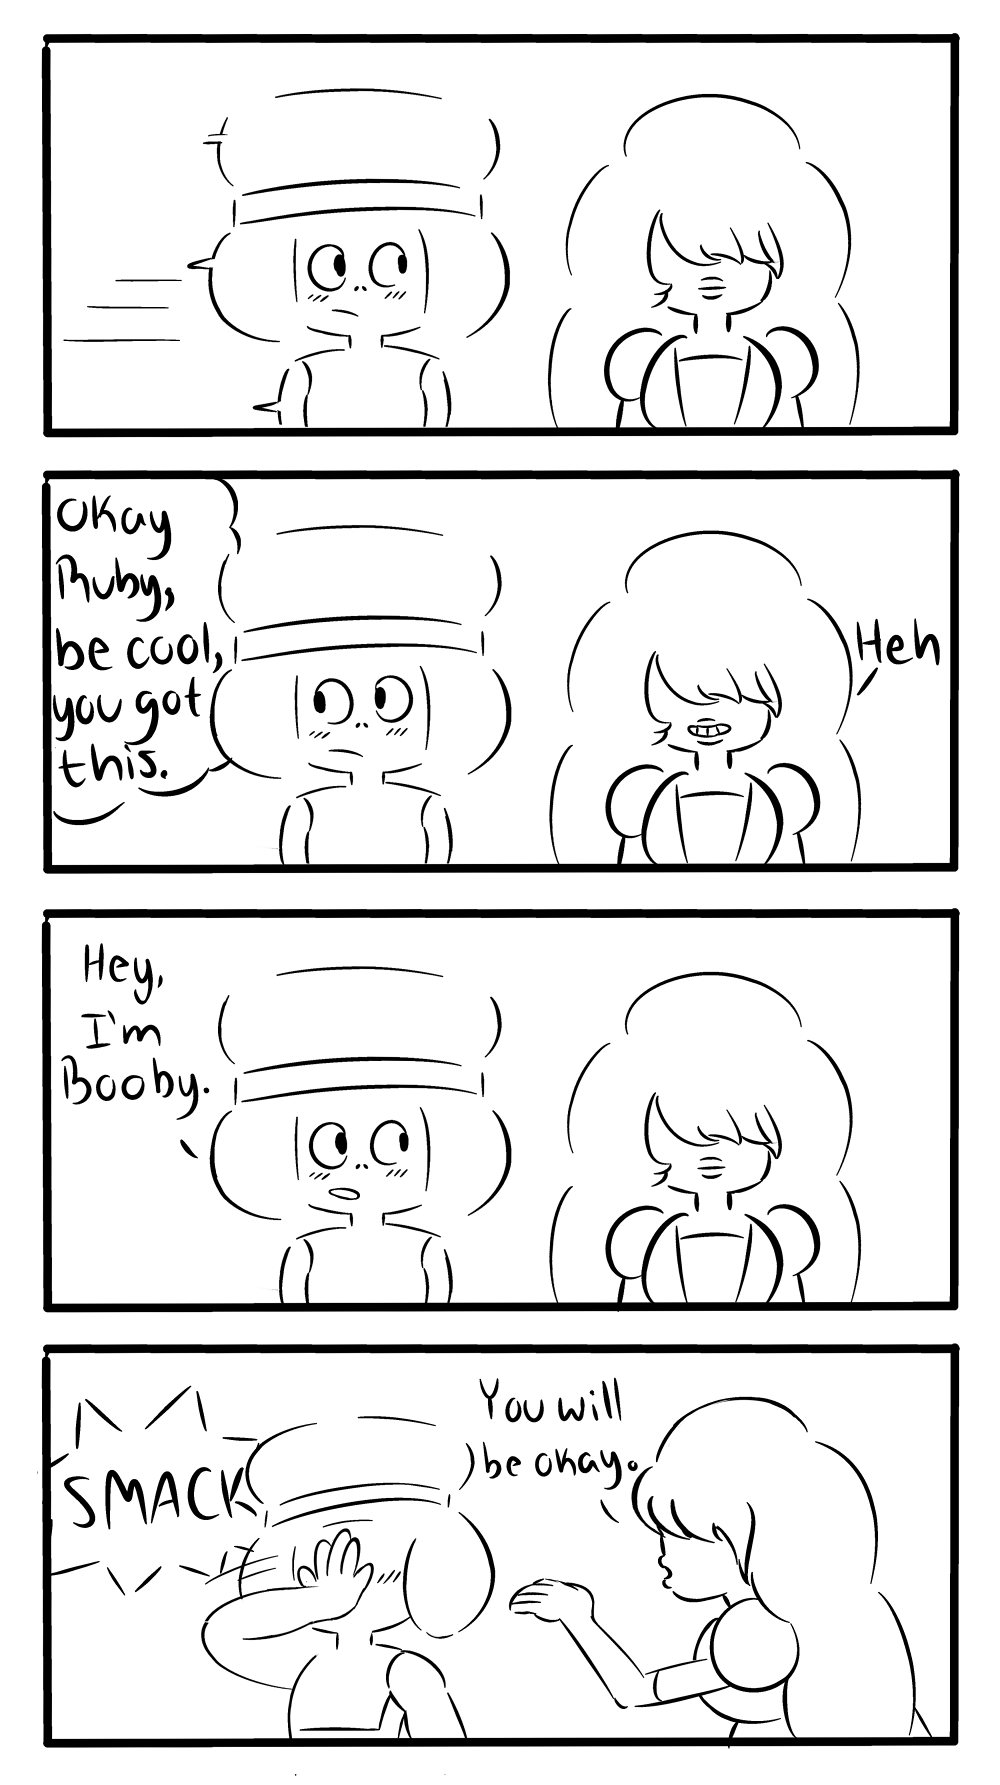 and that, kids, is how garnet was born